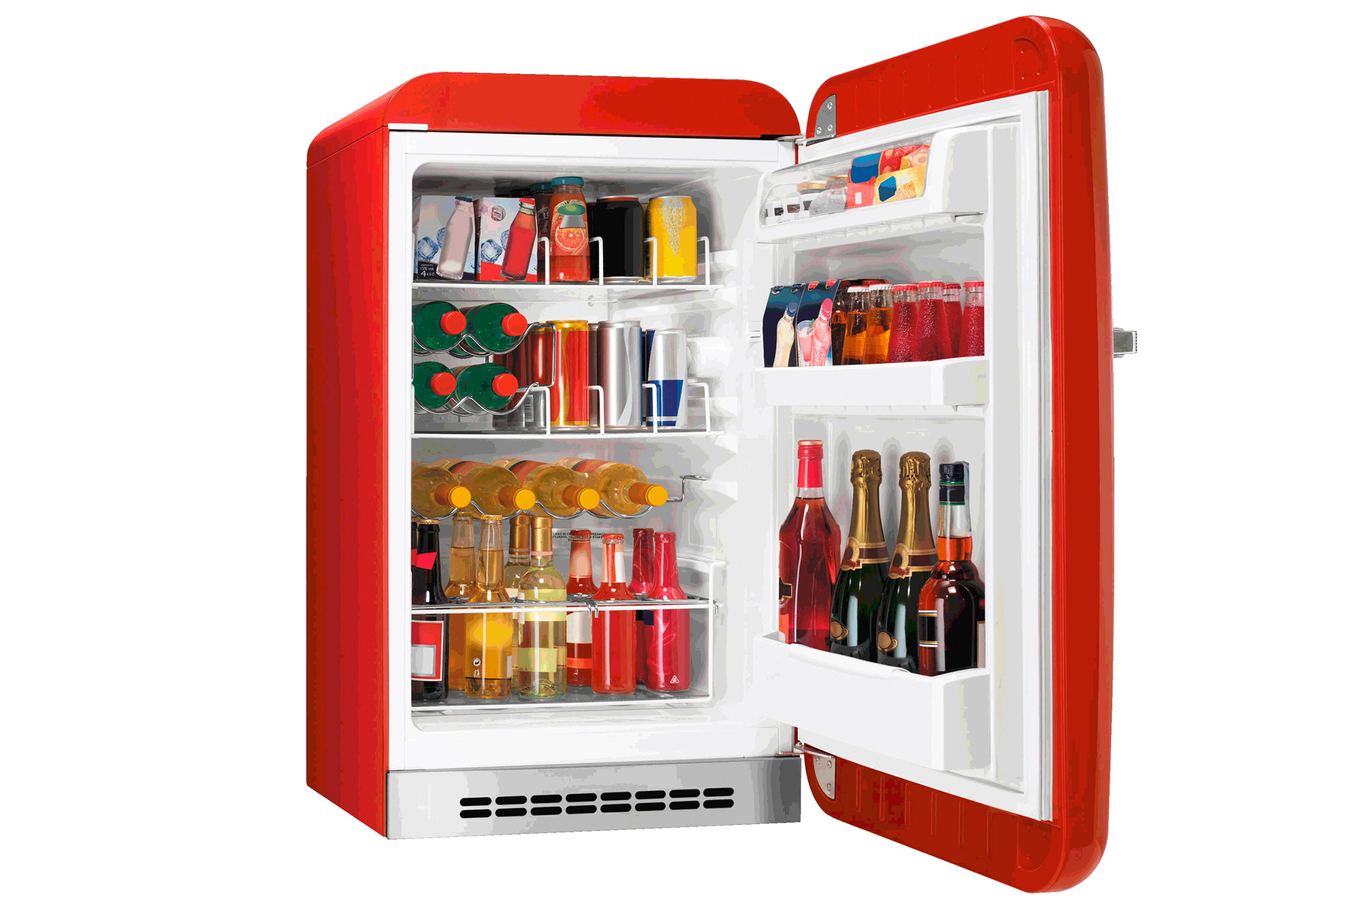 Refrigerateur bar smeg fab10hrr fab10hrr 3521435 darty - Frigo de bar ...